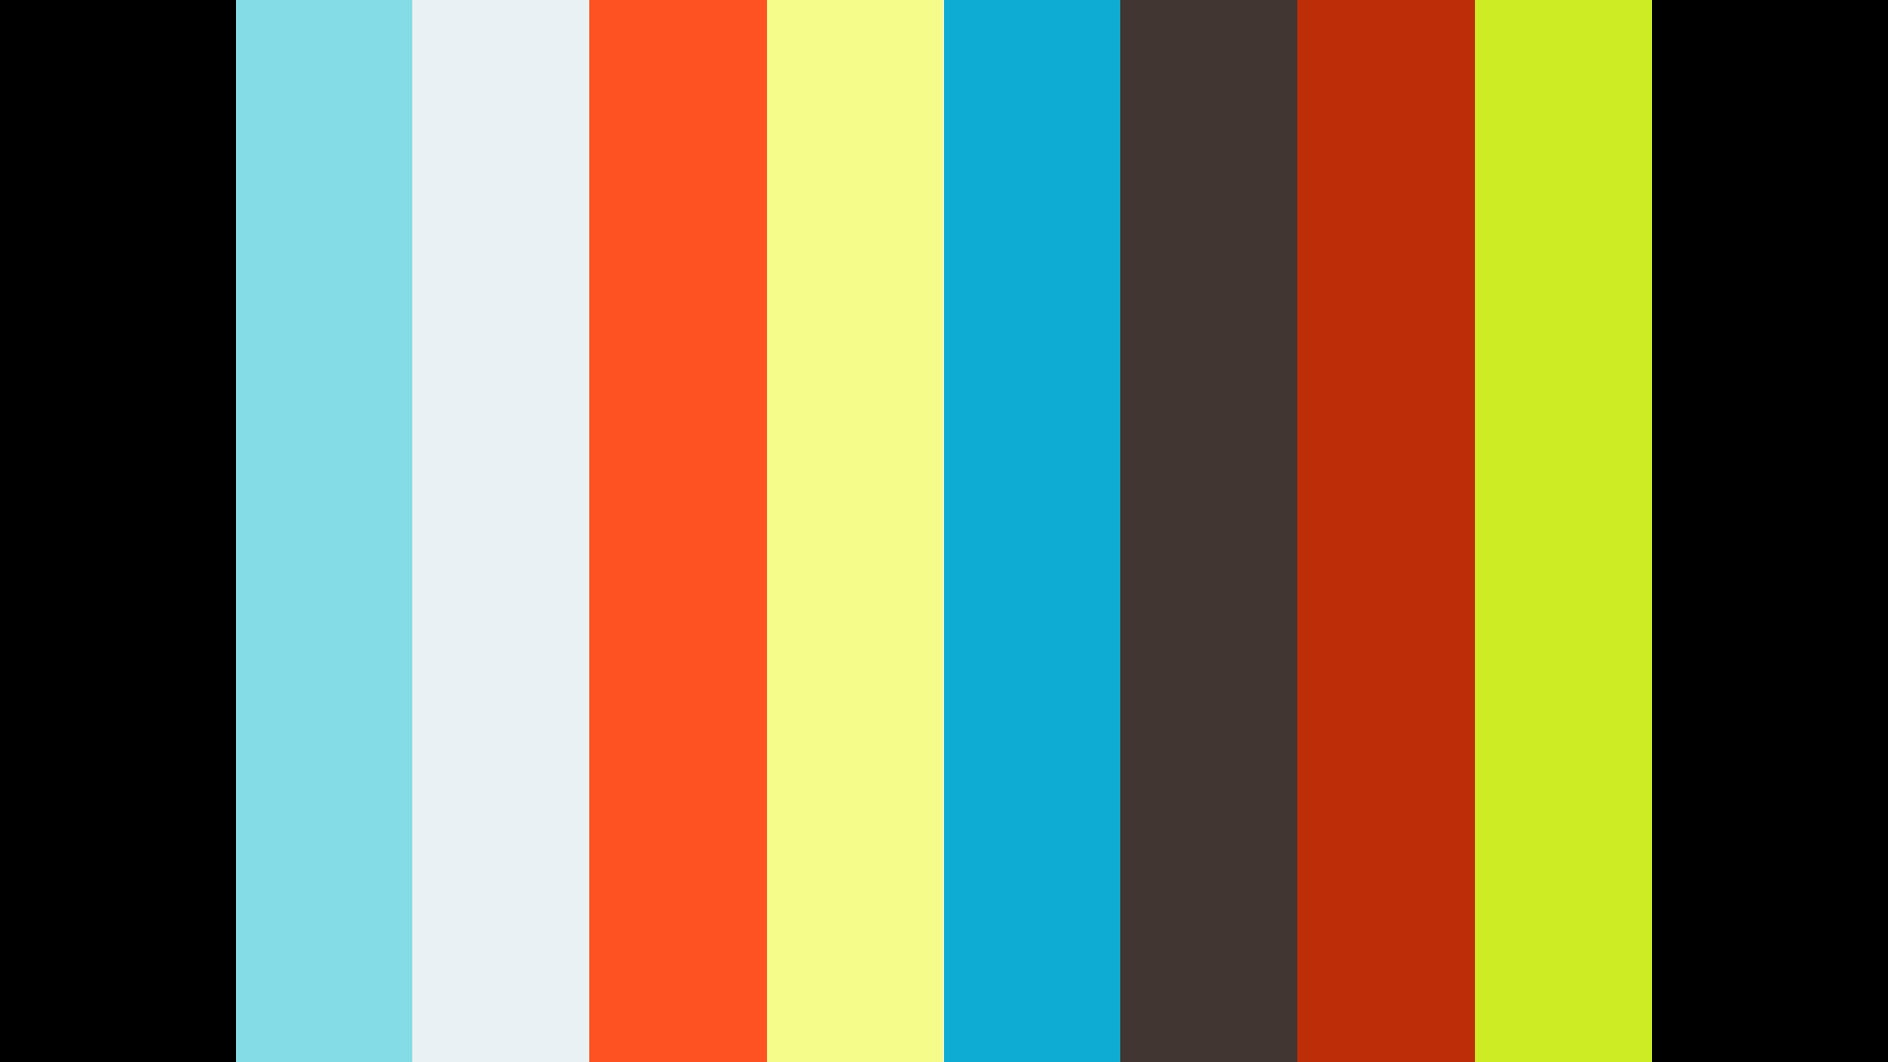 Lars Boering – Managing Director at World Press Photo - Eddie Adams Workshop 2016